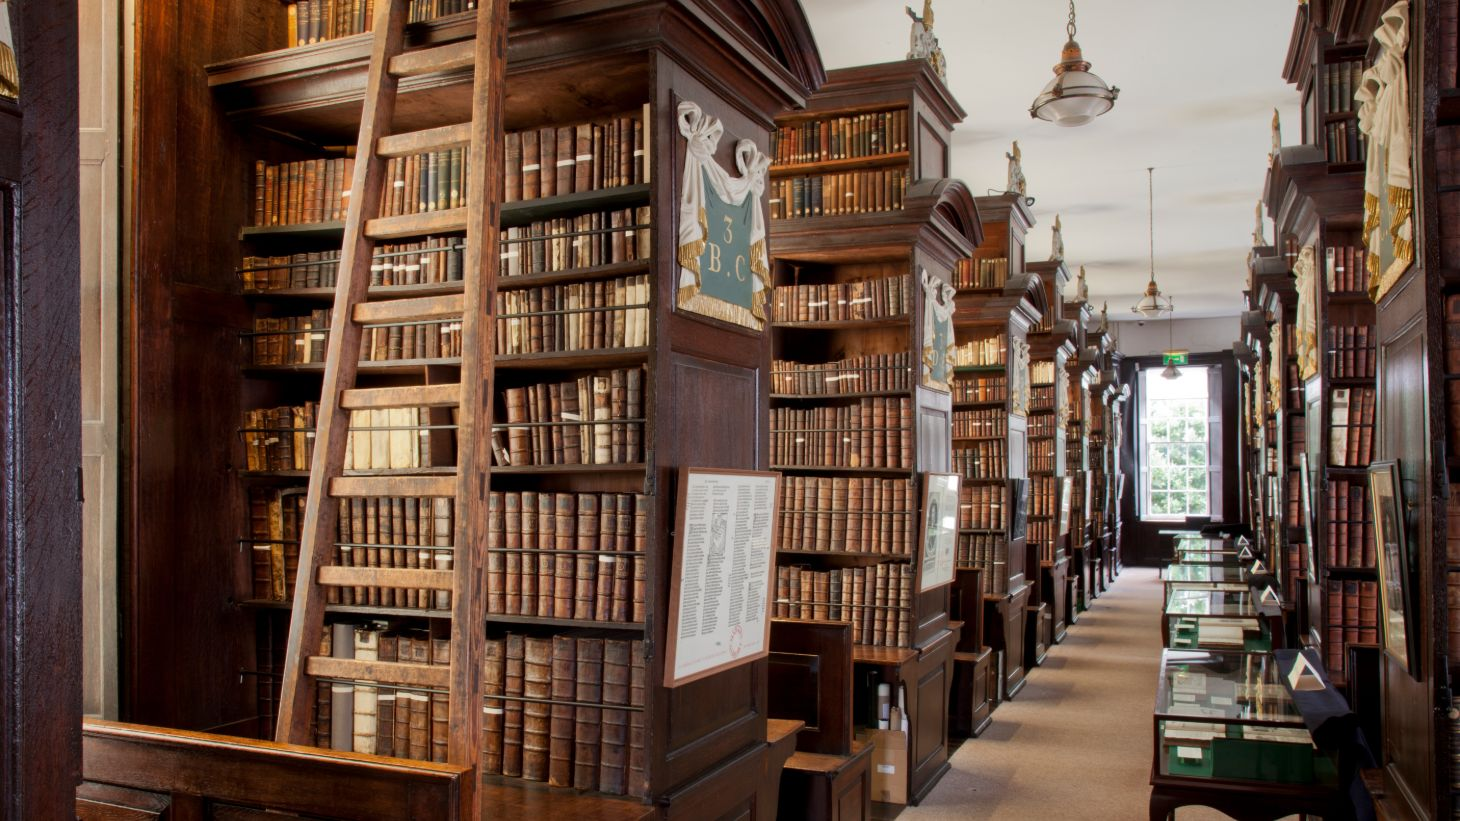 Explore Marsh's Library, one of the city's treasures.